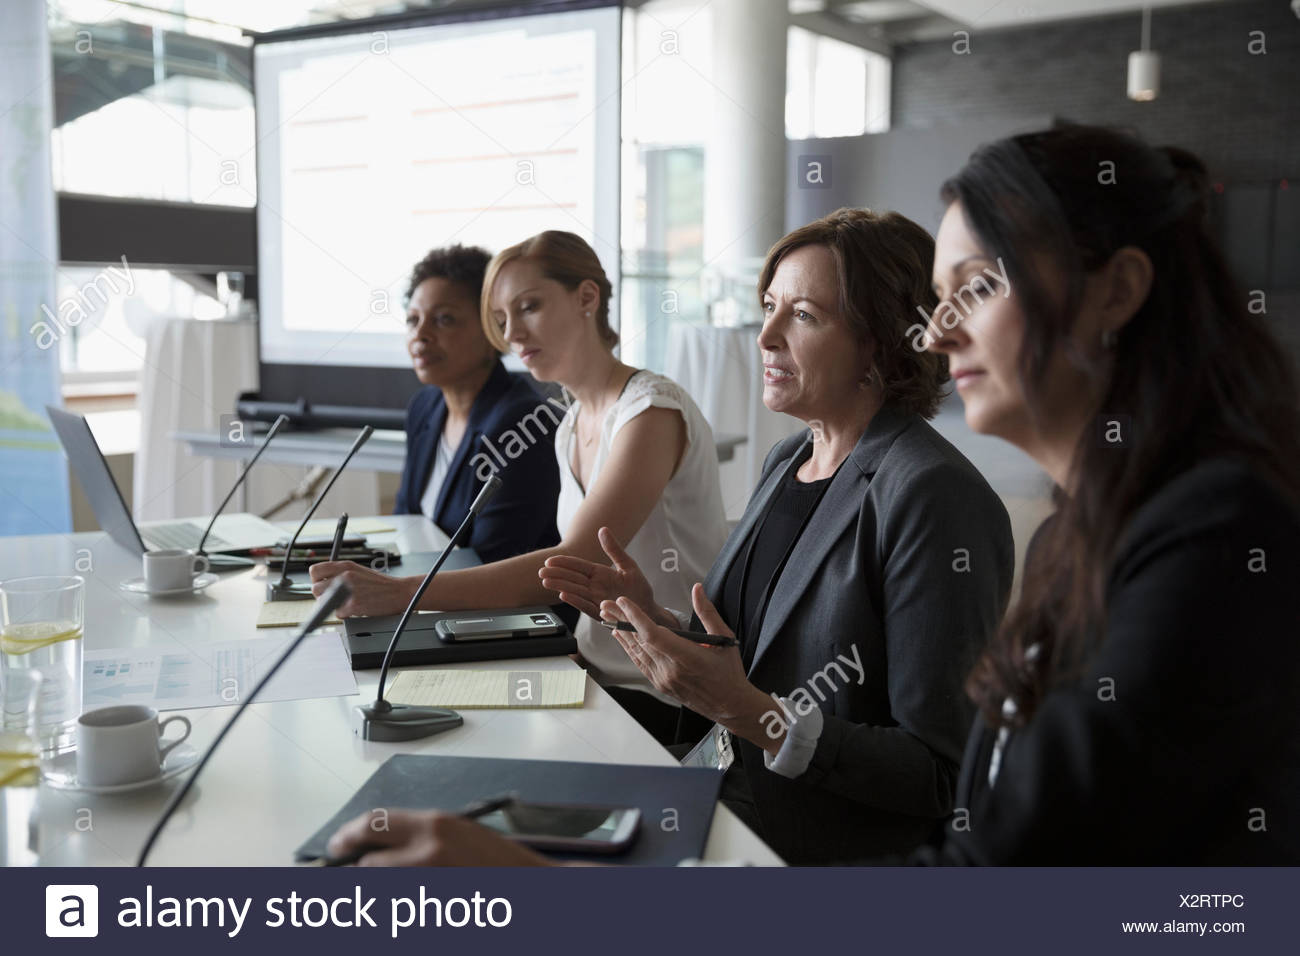 Businesswoman talking on conference panel - Stock Image